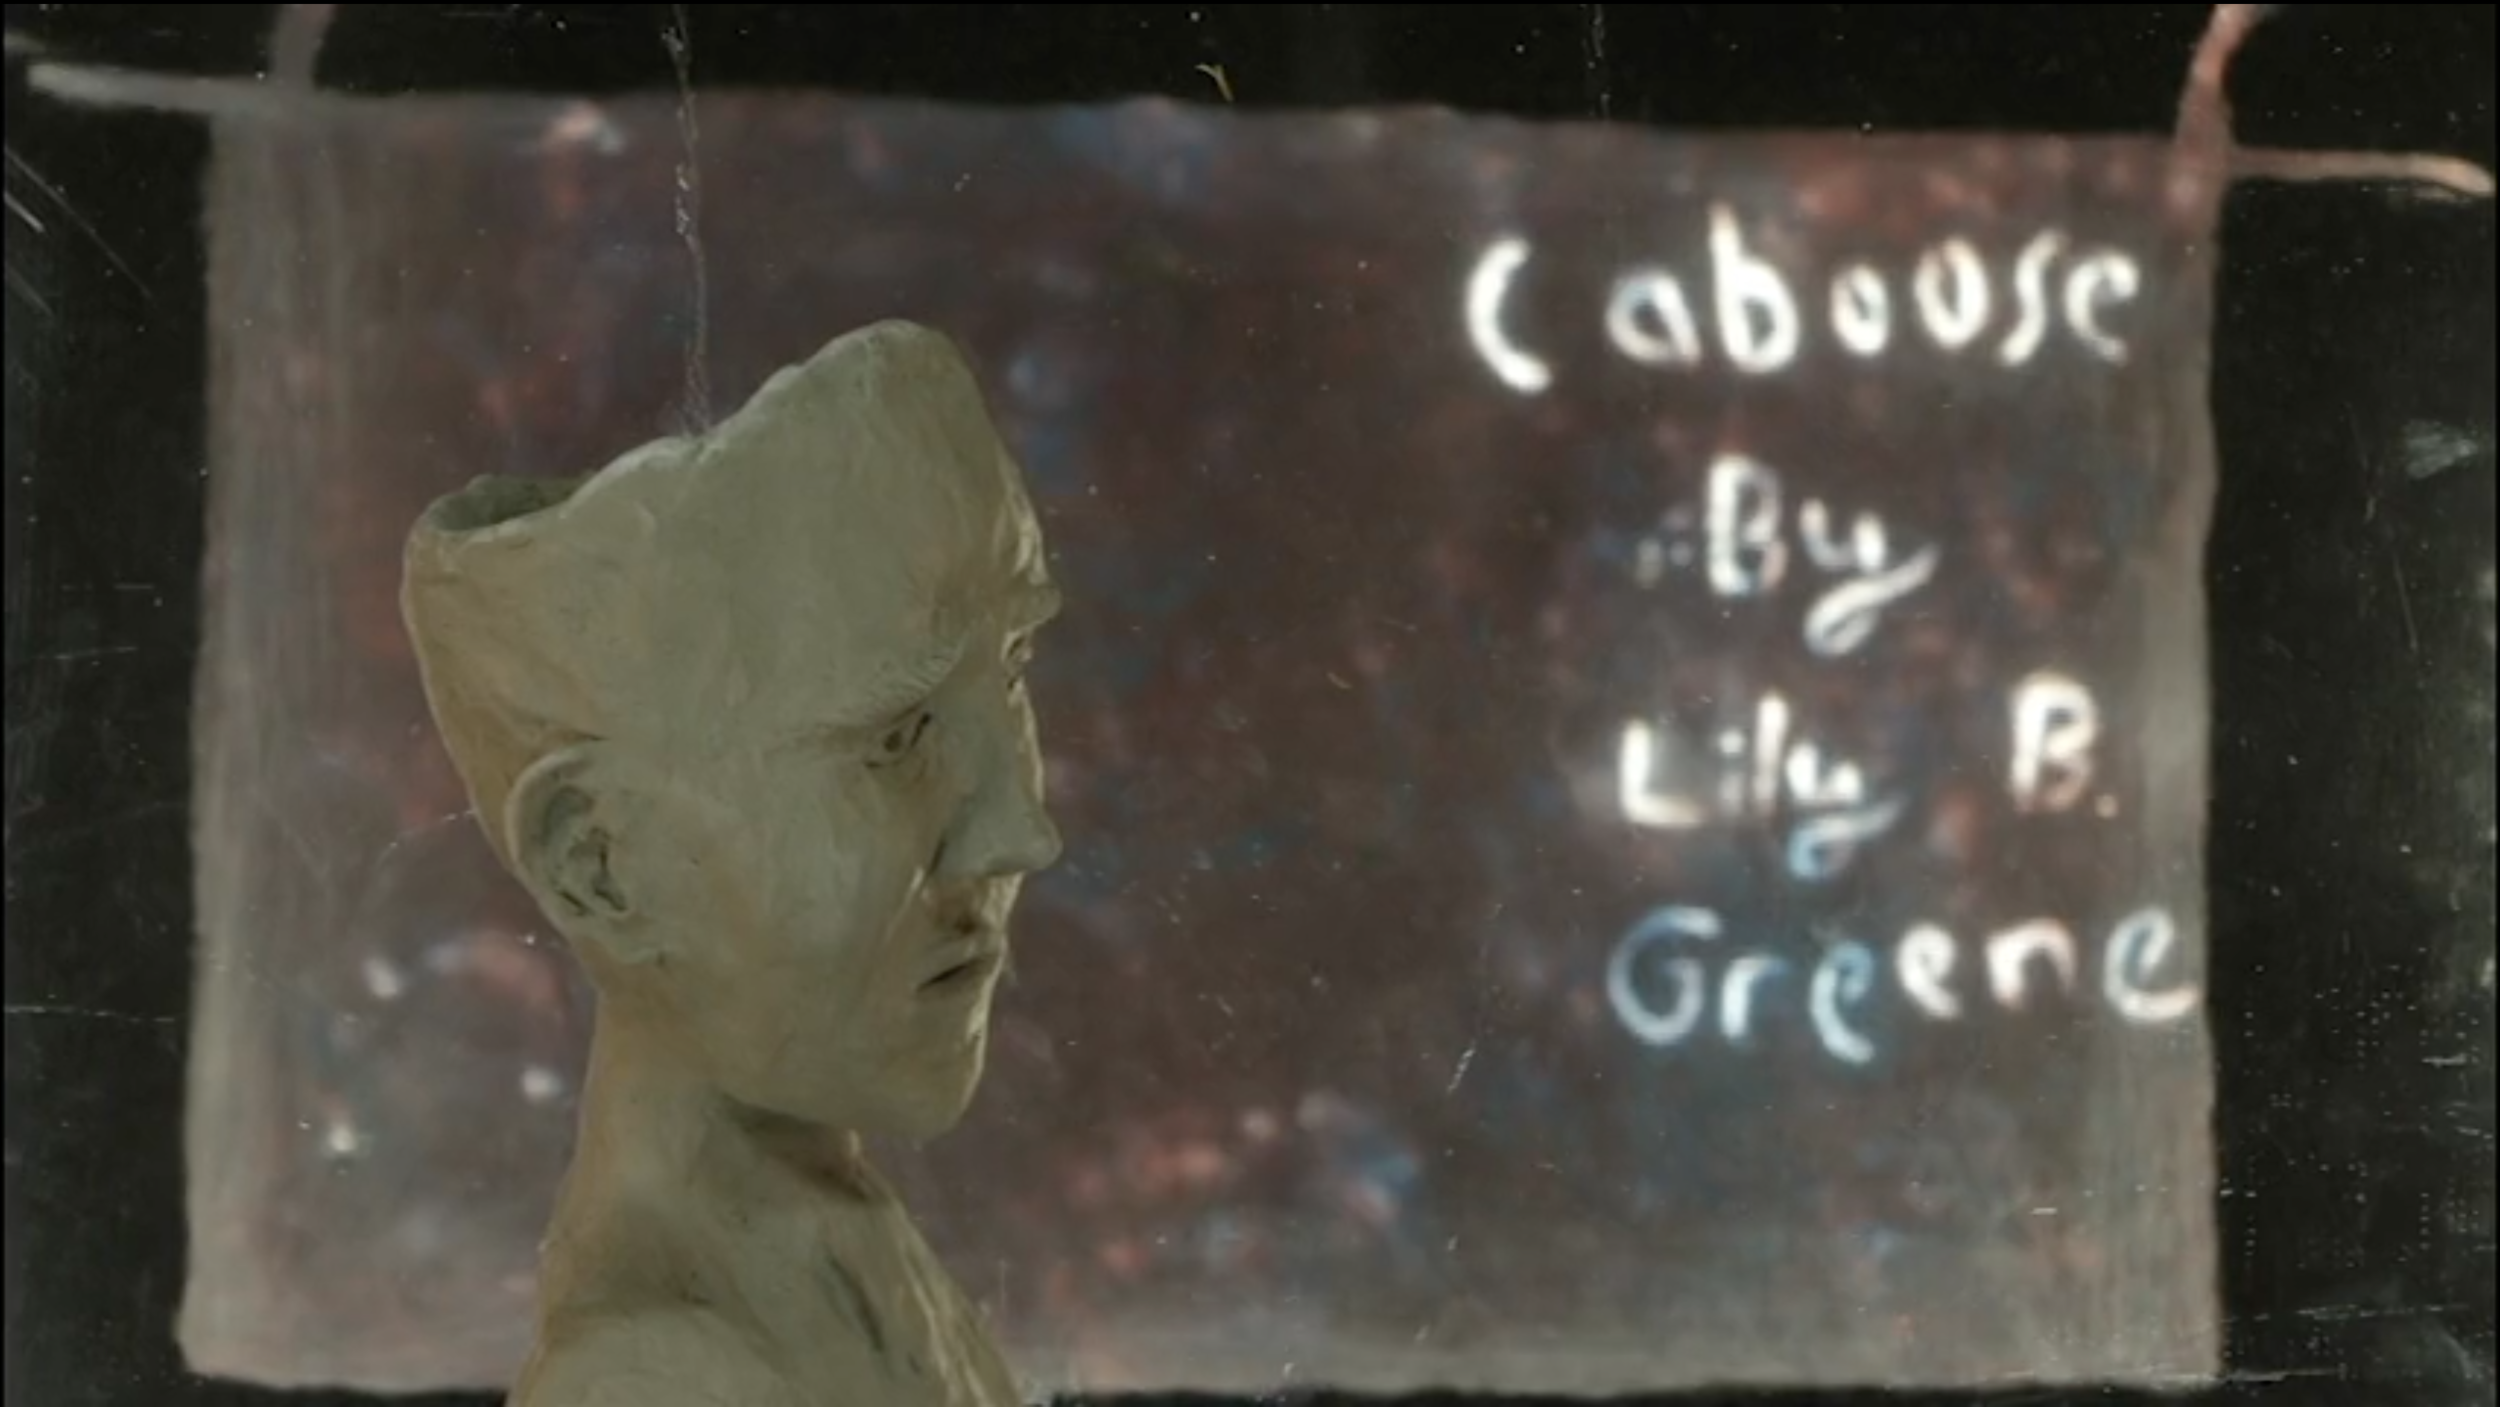 Caboose - Clay and sand animation short on a train ride in a foreign country. Directed by Lily Greene.